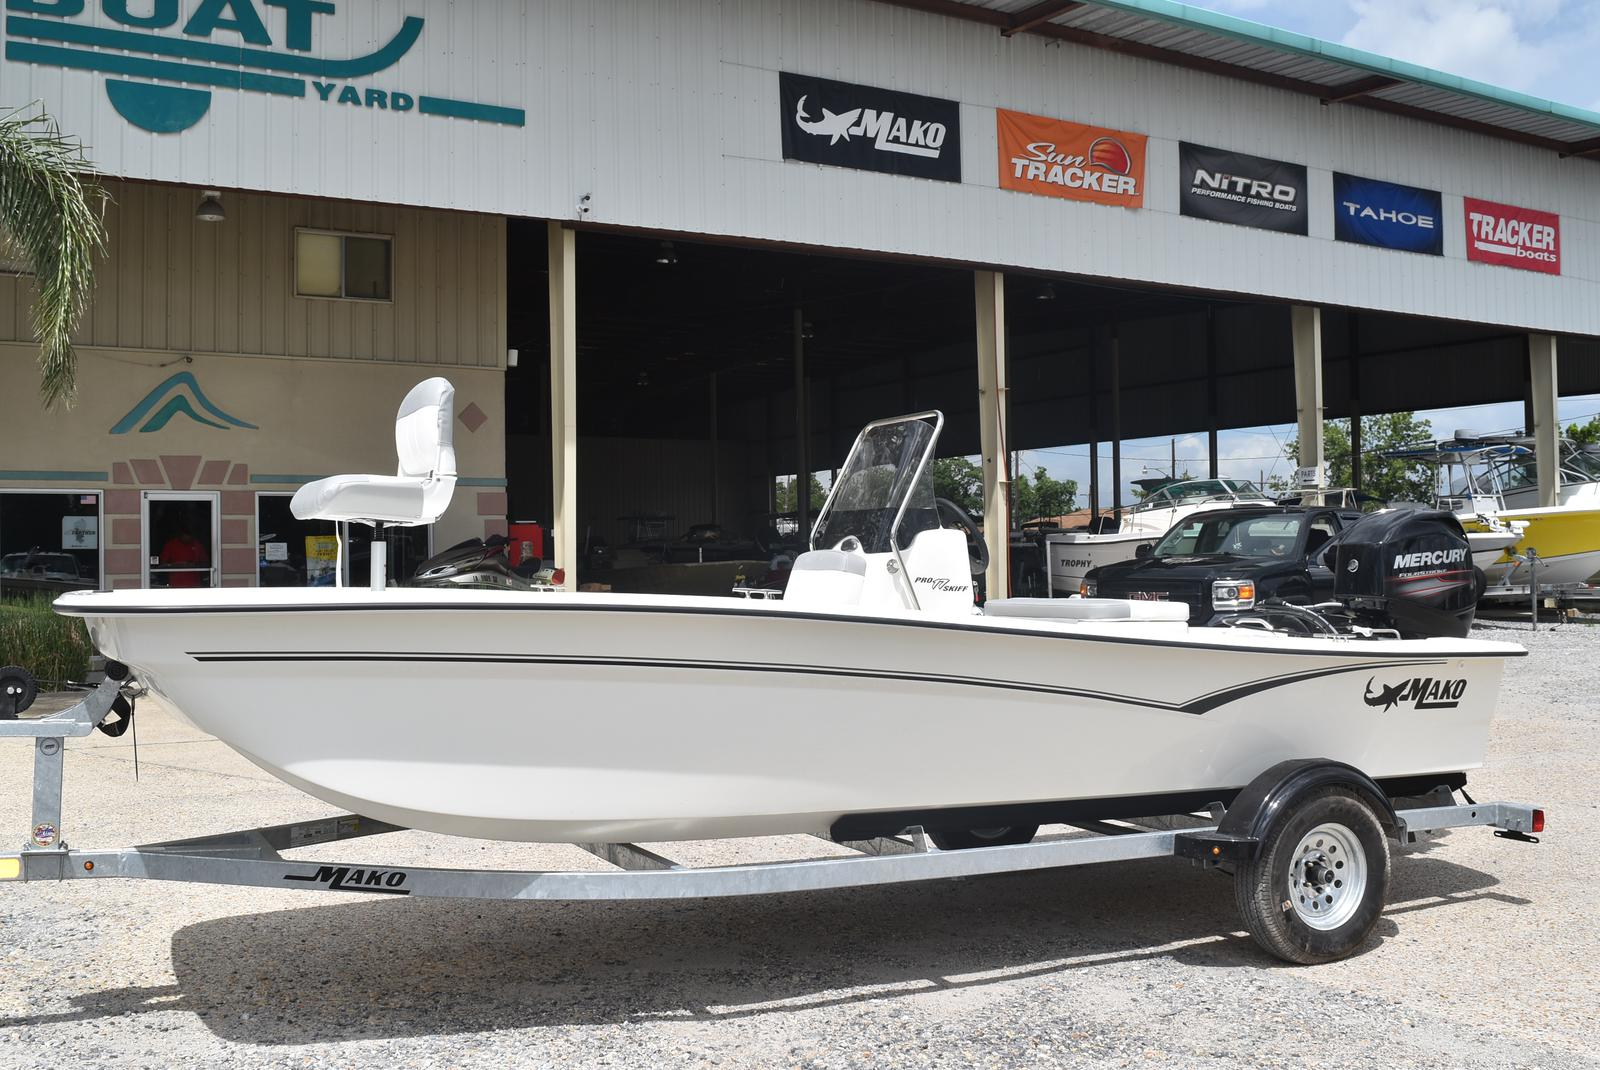 2020 Mako boat for sale, model of the boat is Pro Skiff 17, 75 ELPT & Image # 125 of 702